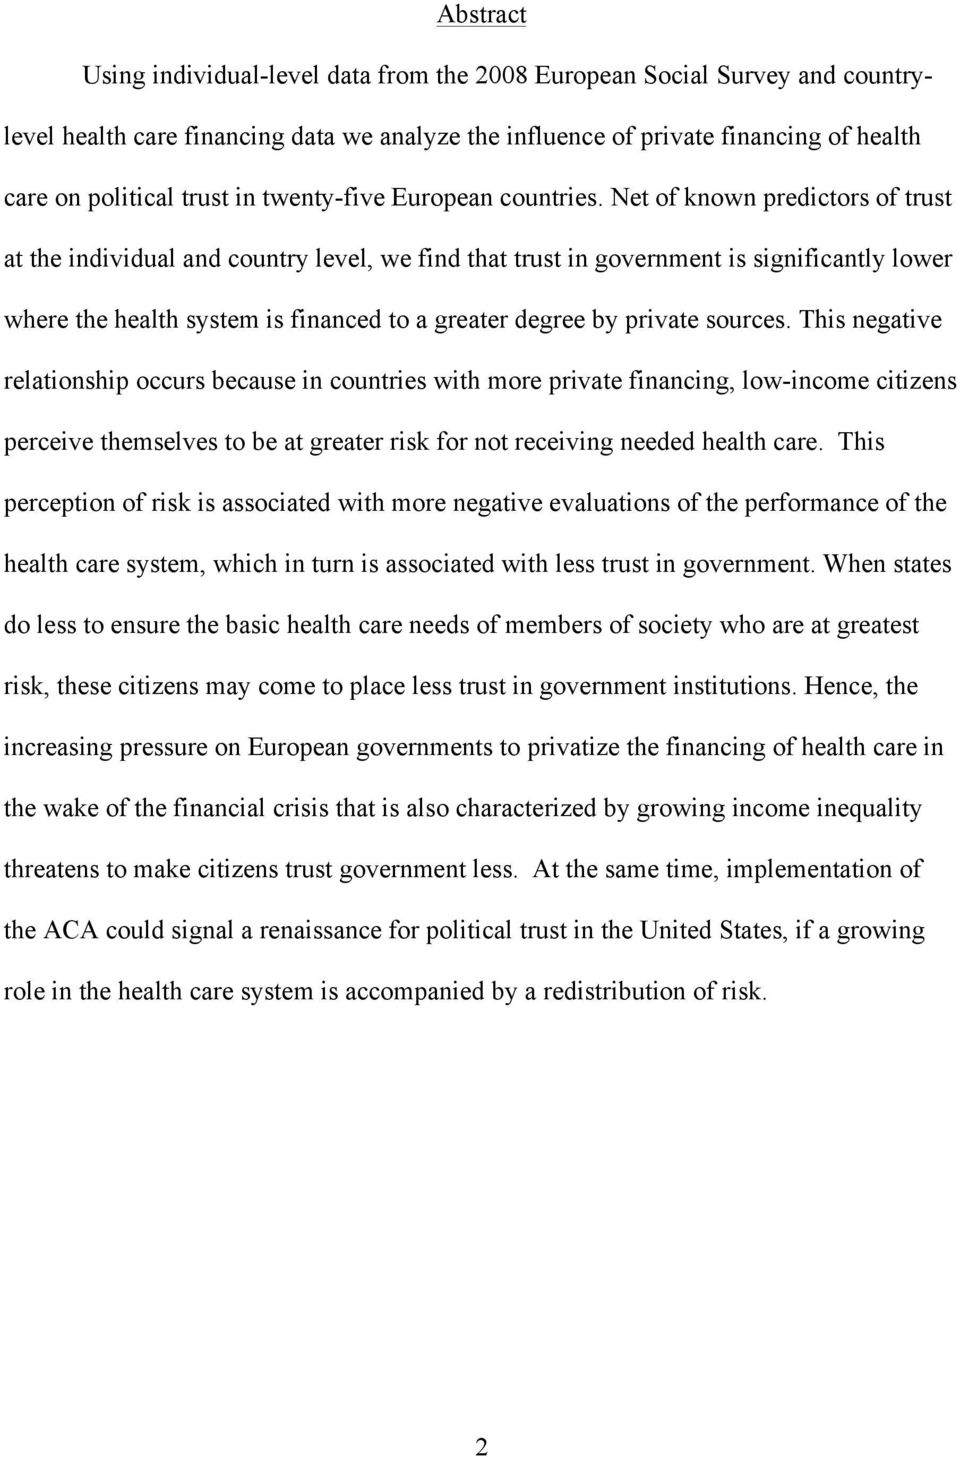 Net of known predictors of trust at the individual and country level, we find that trust in government is significantly lower where the health system is financed to a greater degree by private